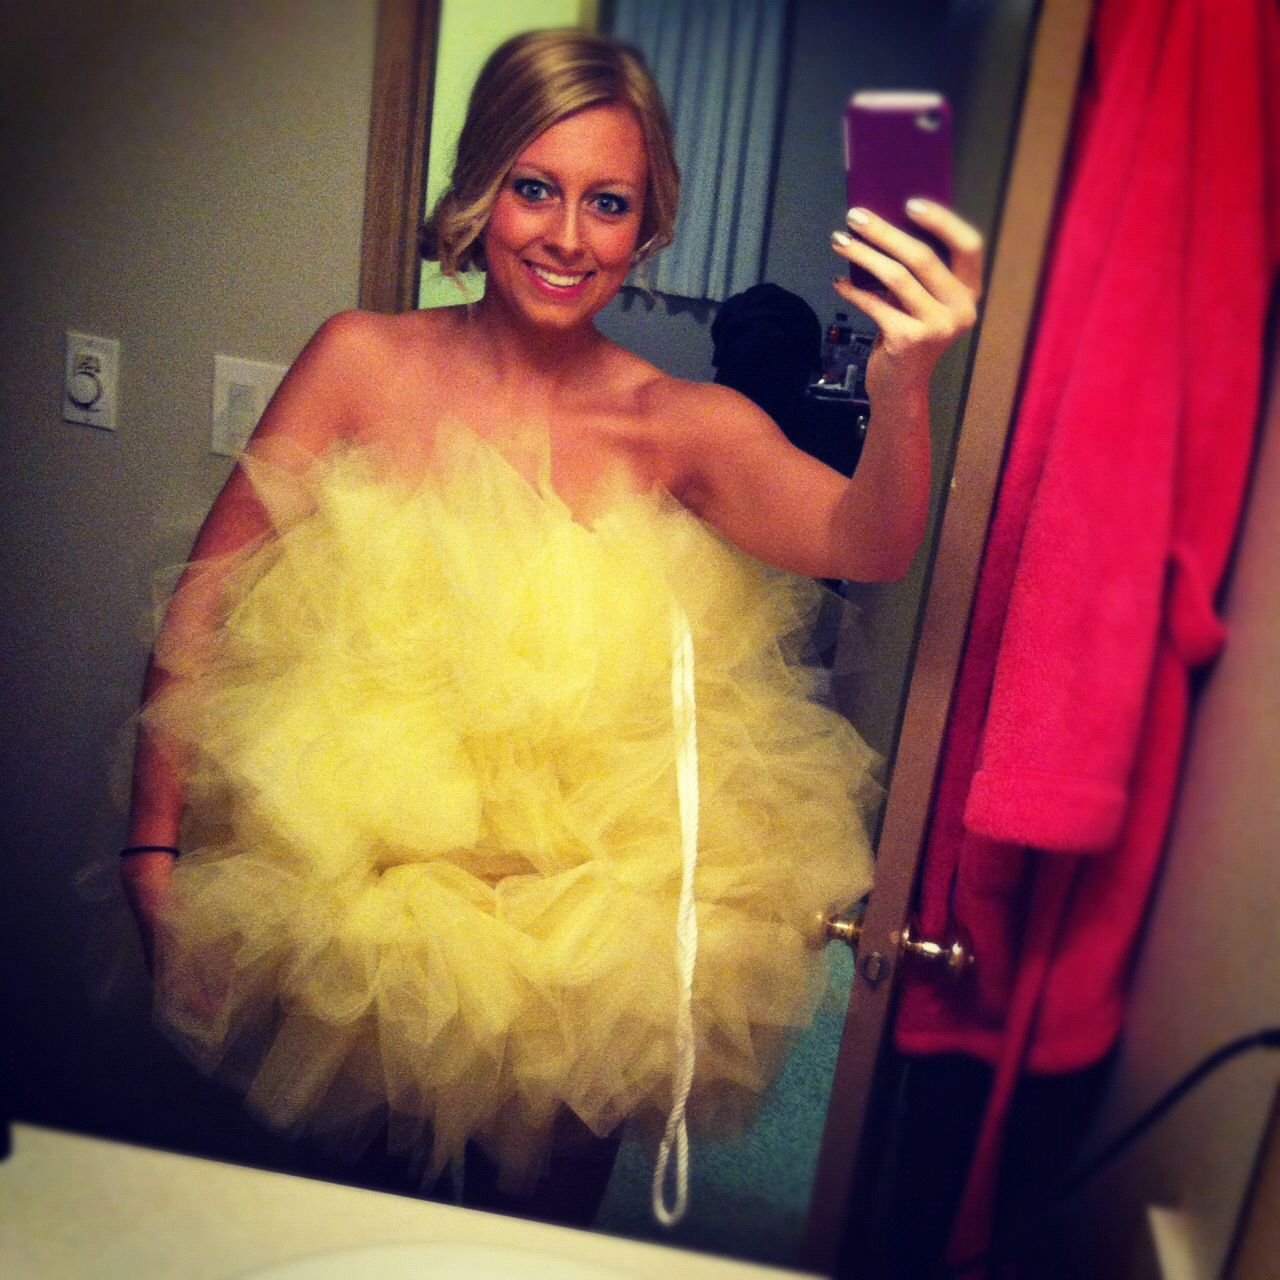 My DIY loofah halloween costume  sc 1 st  Pinterest & My DIY loofah halloween costume | Holidays | Pinterest | Loofah ...